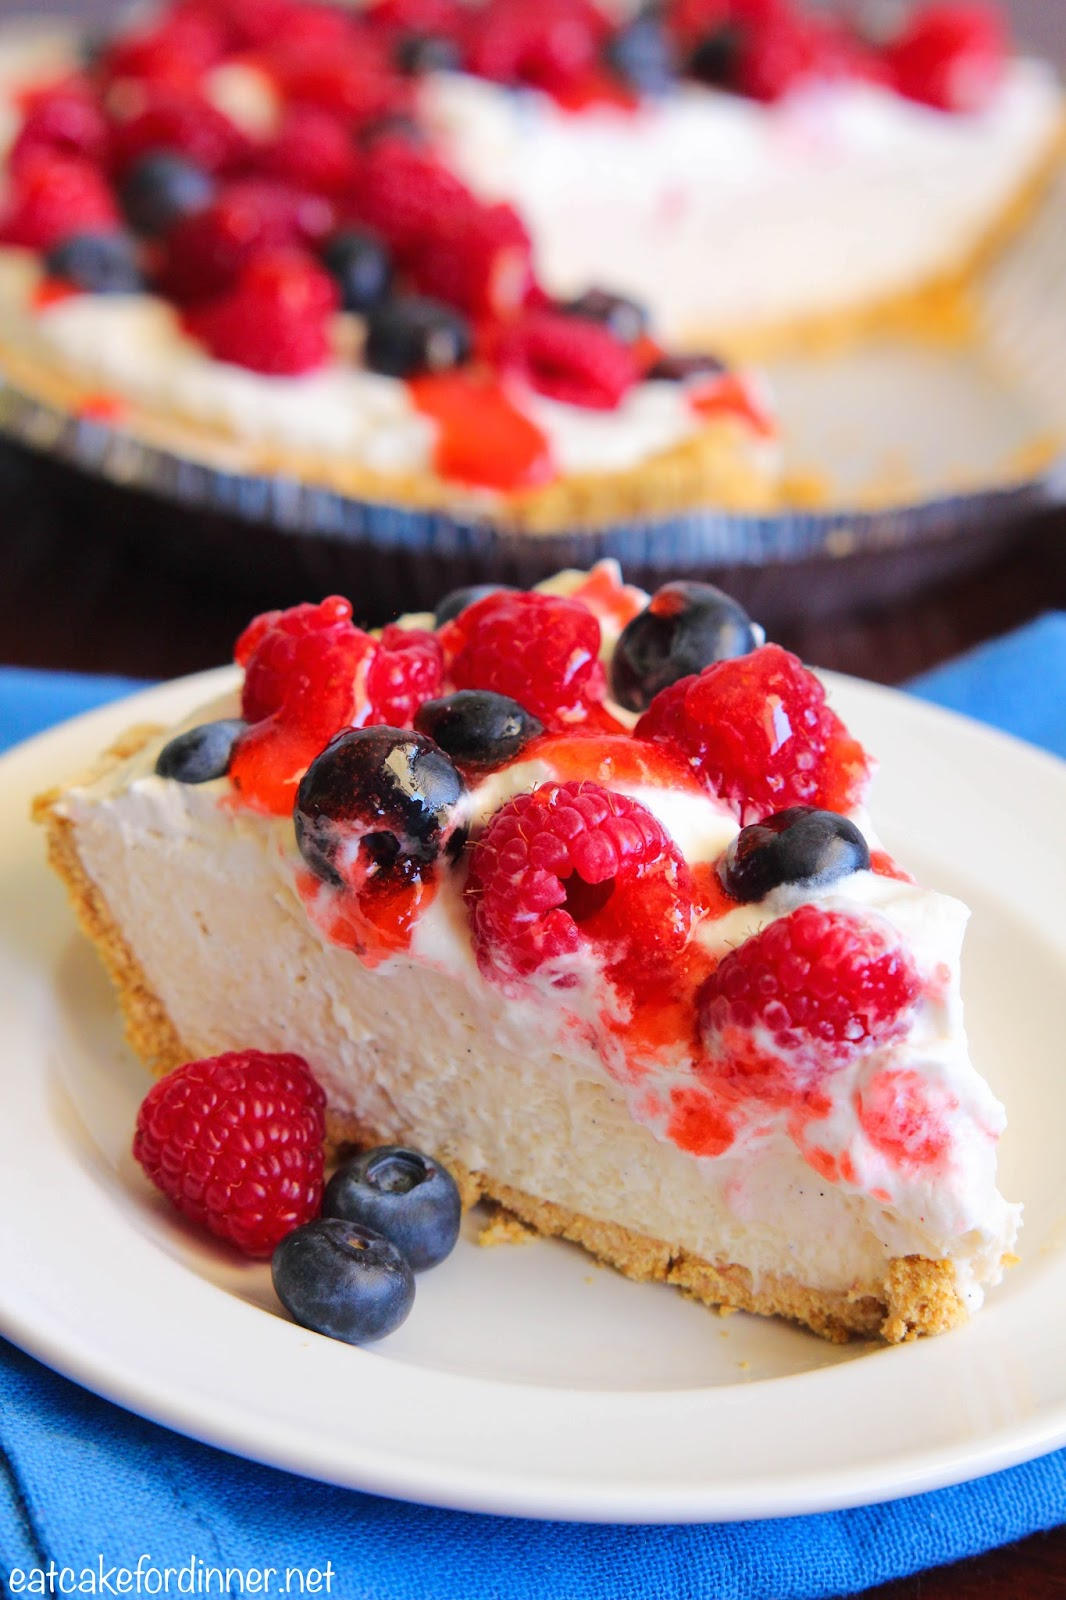 Eat Cake For Dinner: No-Bake Berry Vanilla Bean Pudding Pie